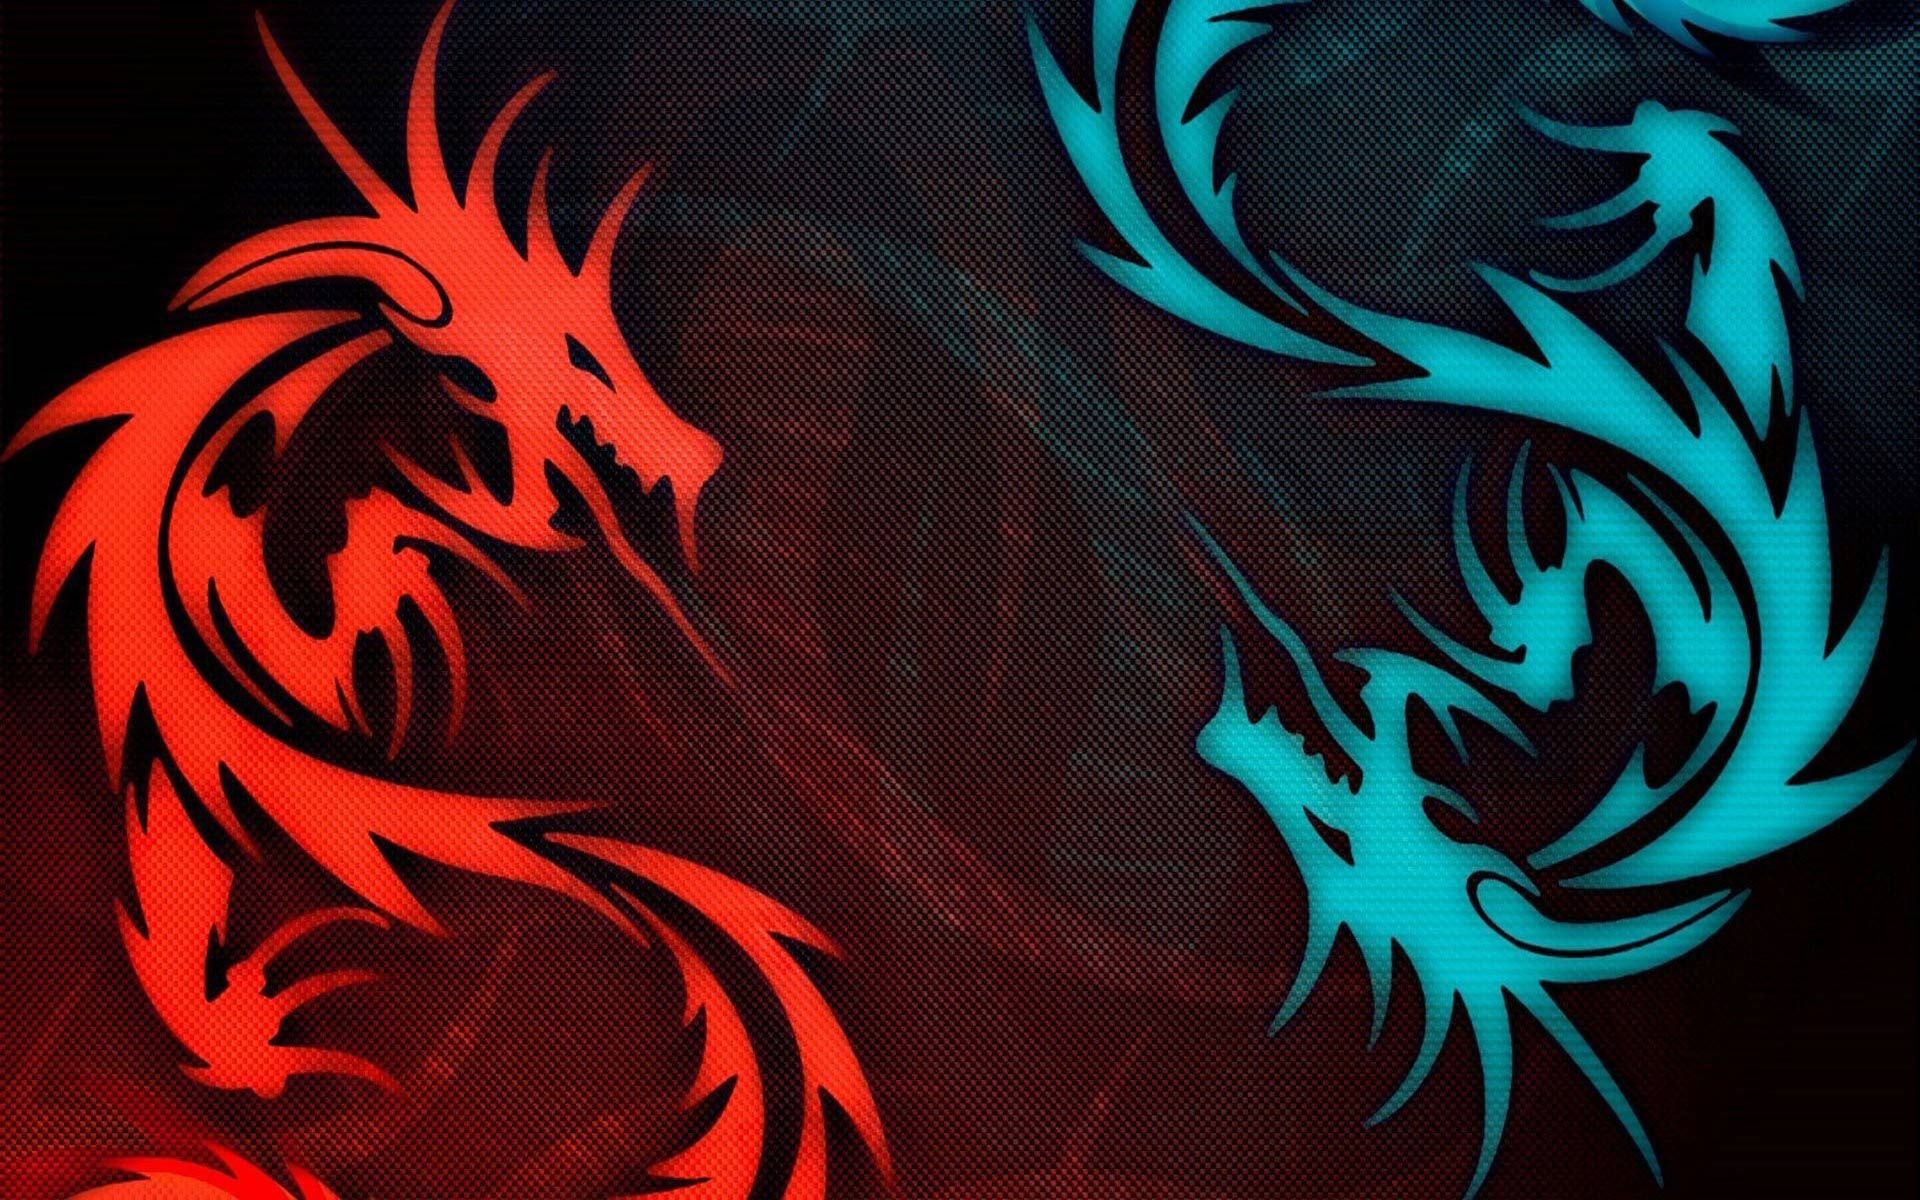 Free Msi Gaming Dragon Computer Desktop Wallpapers Pictures Images Dragon Wallpaper Iphone Dragon Pictures Gaming Wallpapers